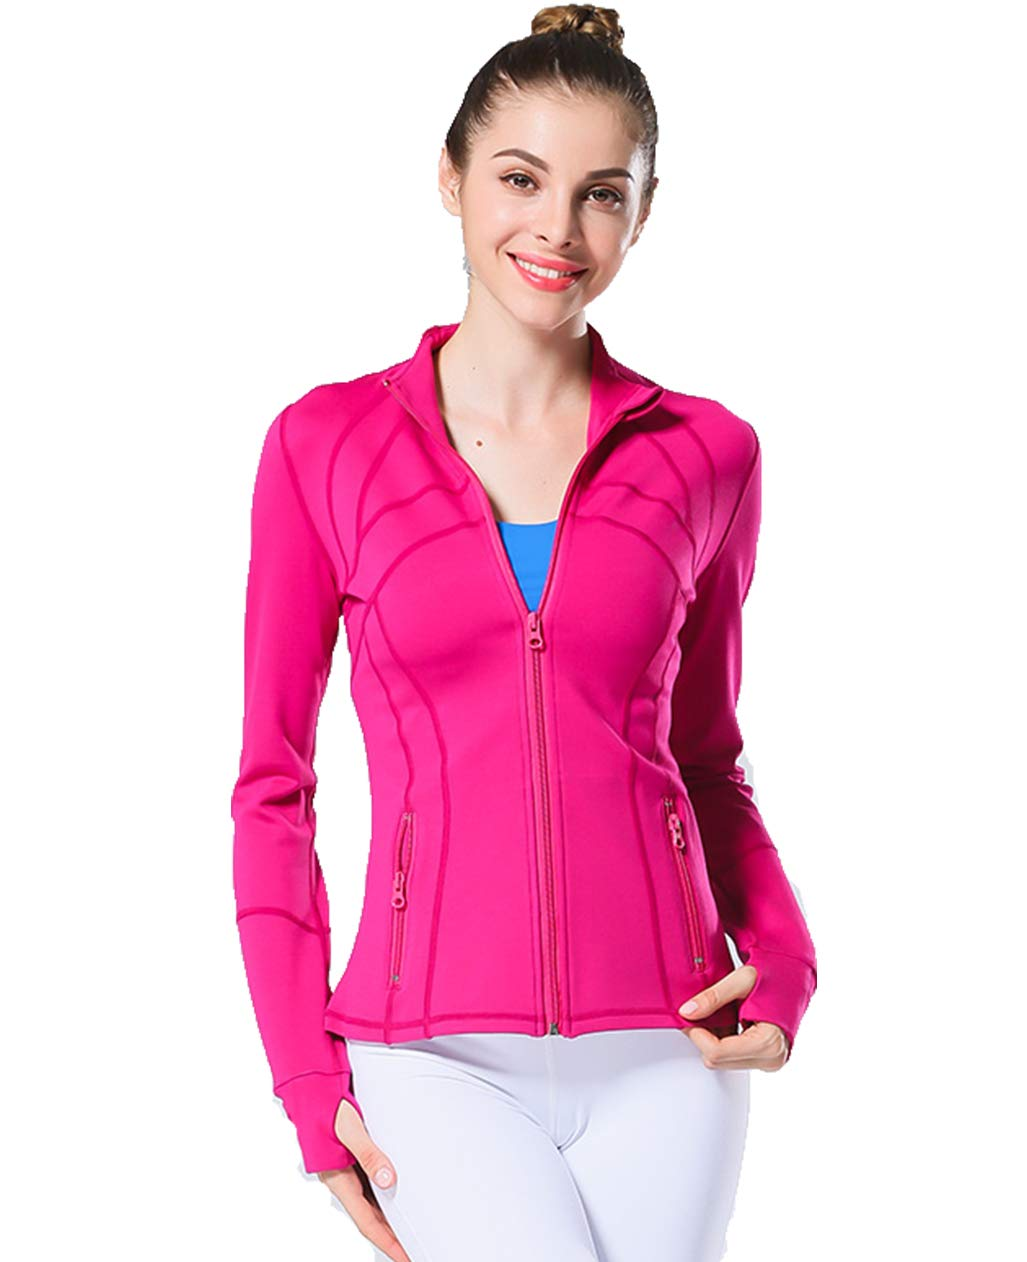 UDIY Fitness Zipper Jacket for Women Sports Exercise Active Jackets Coat Rose by UDIY